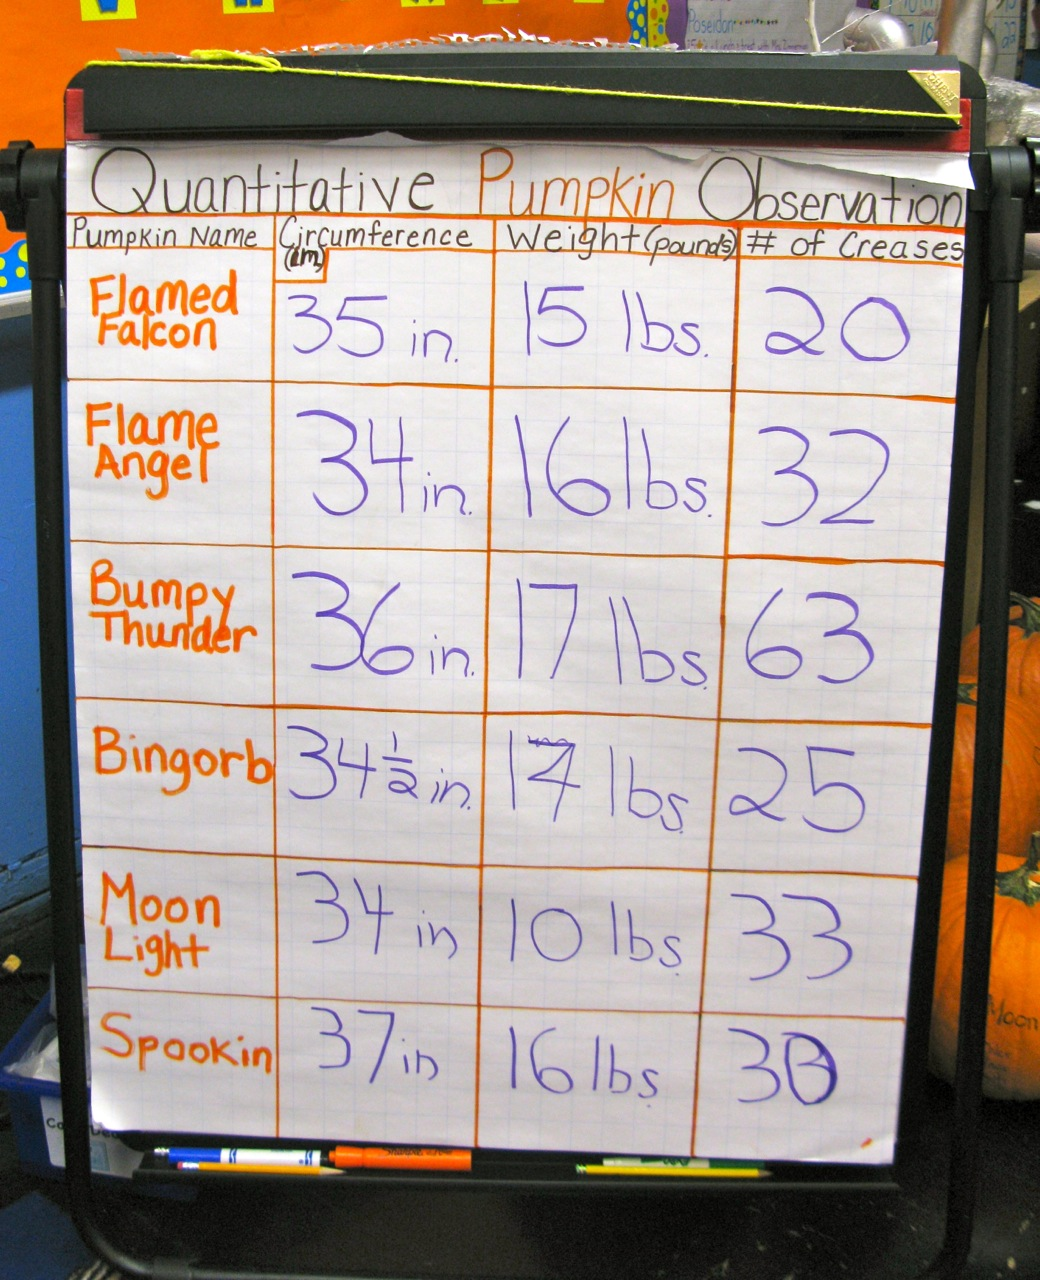 The Pumpkin Project: Math, Science, and Fun! | Scholastic